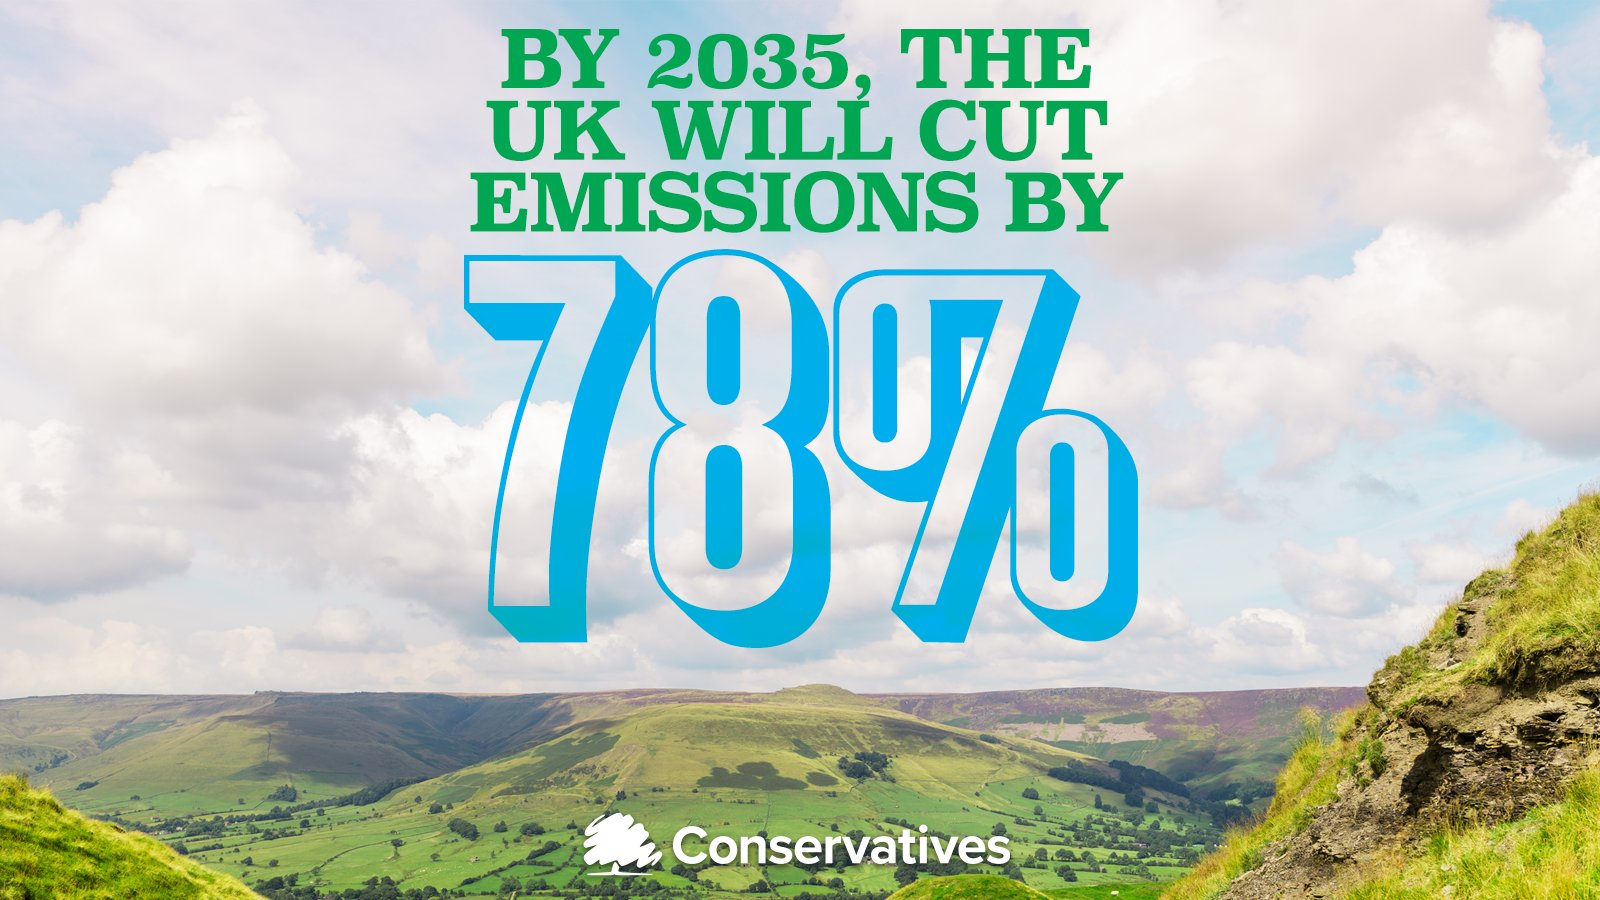 UK enshrines new target in law to slash emissions by 78% by 2035